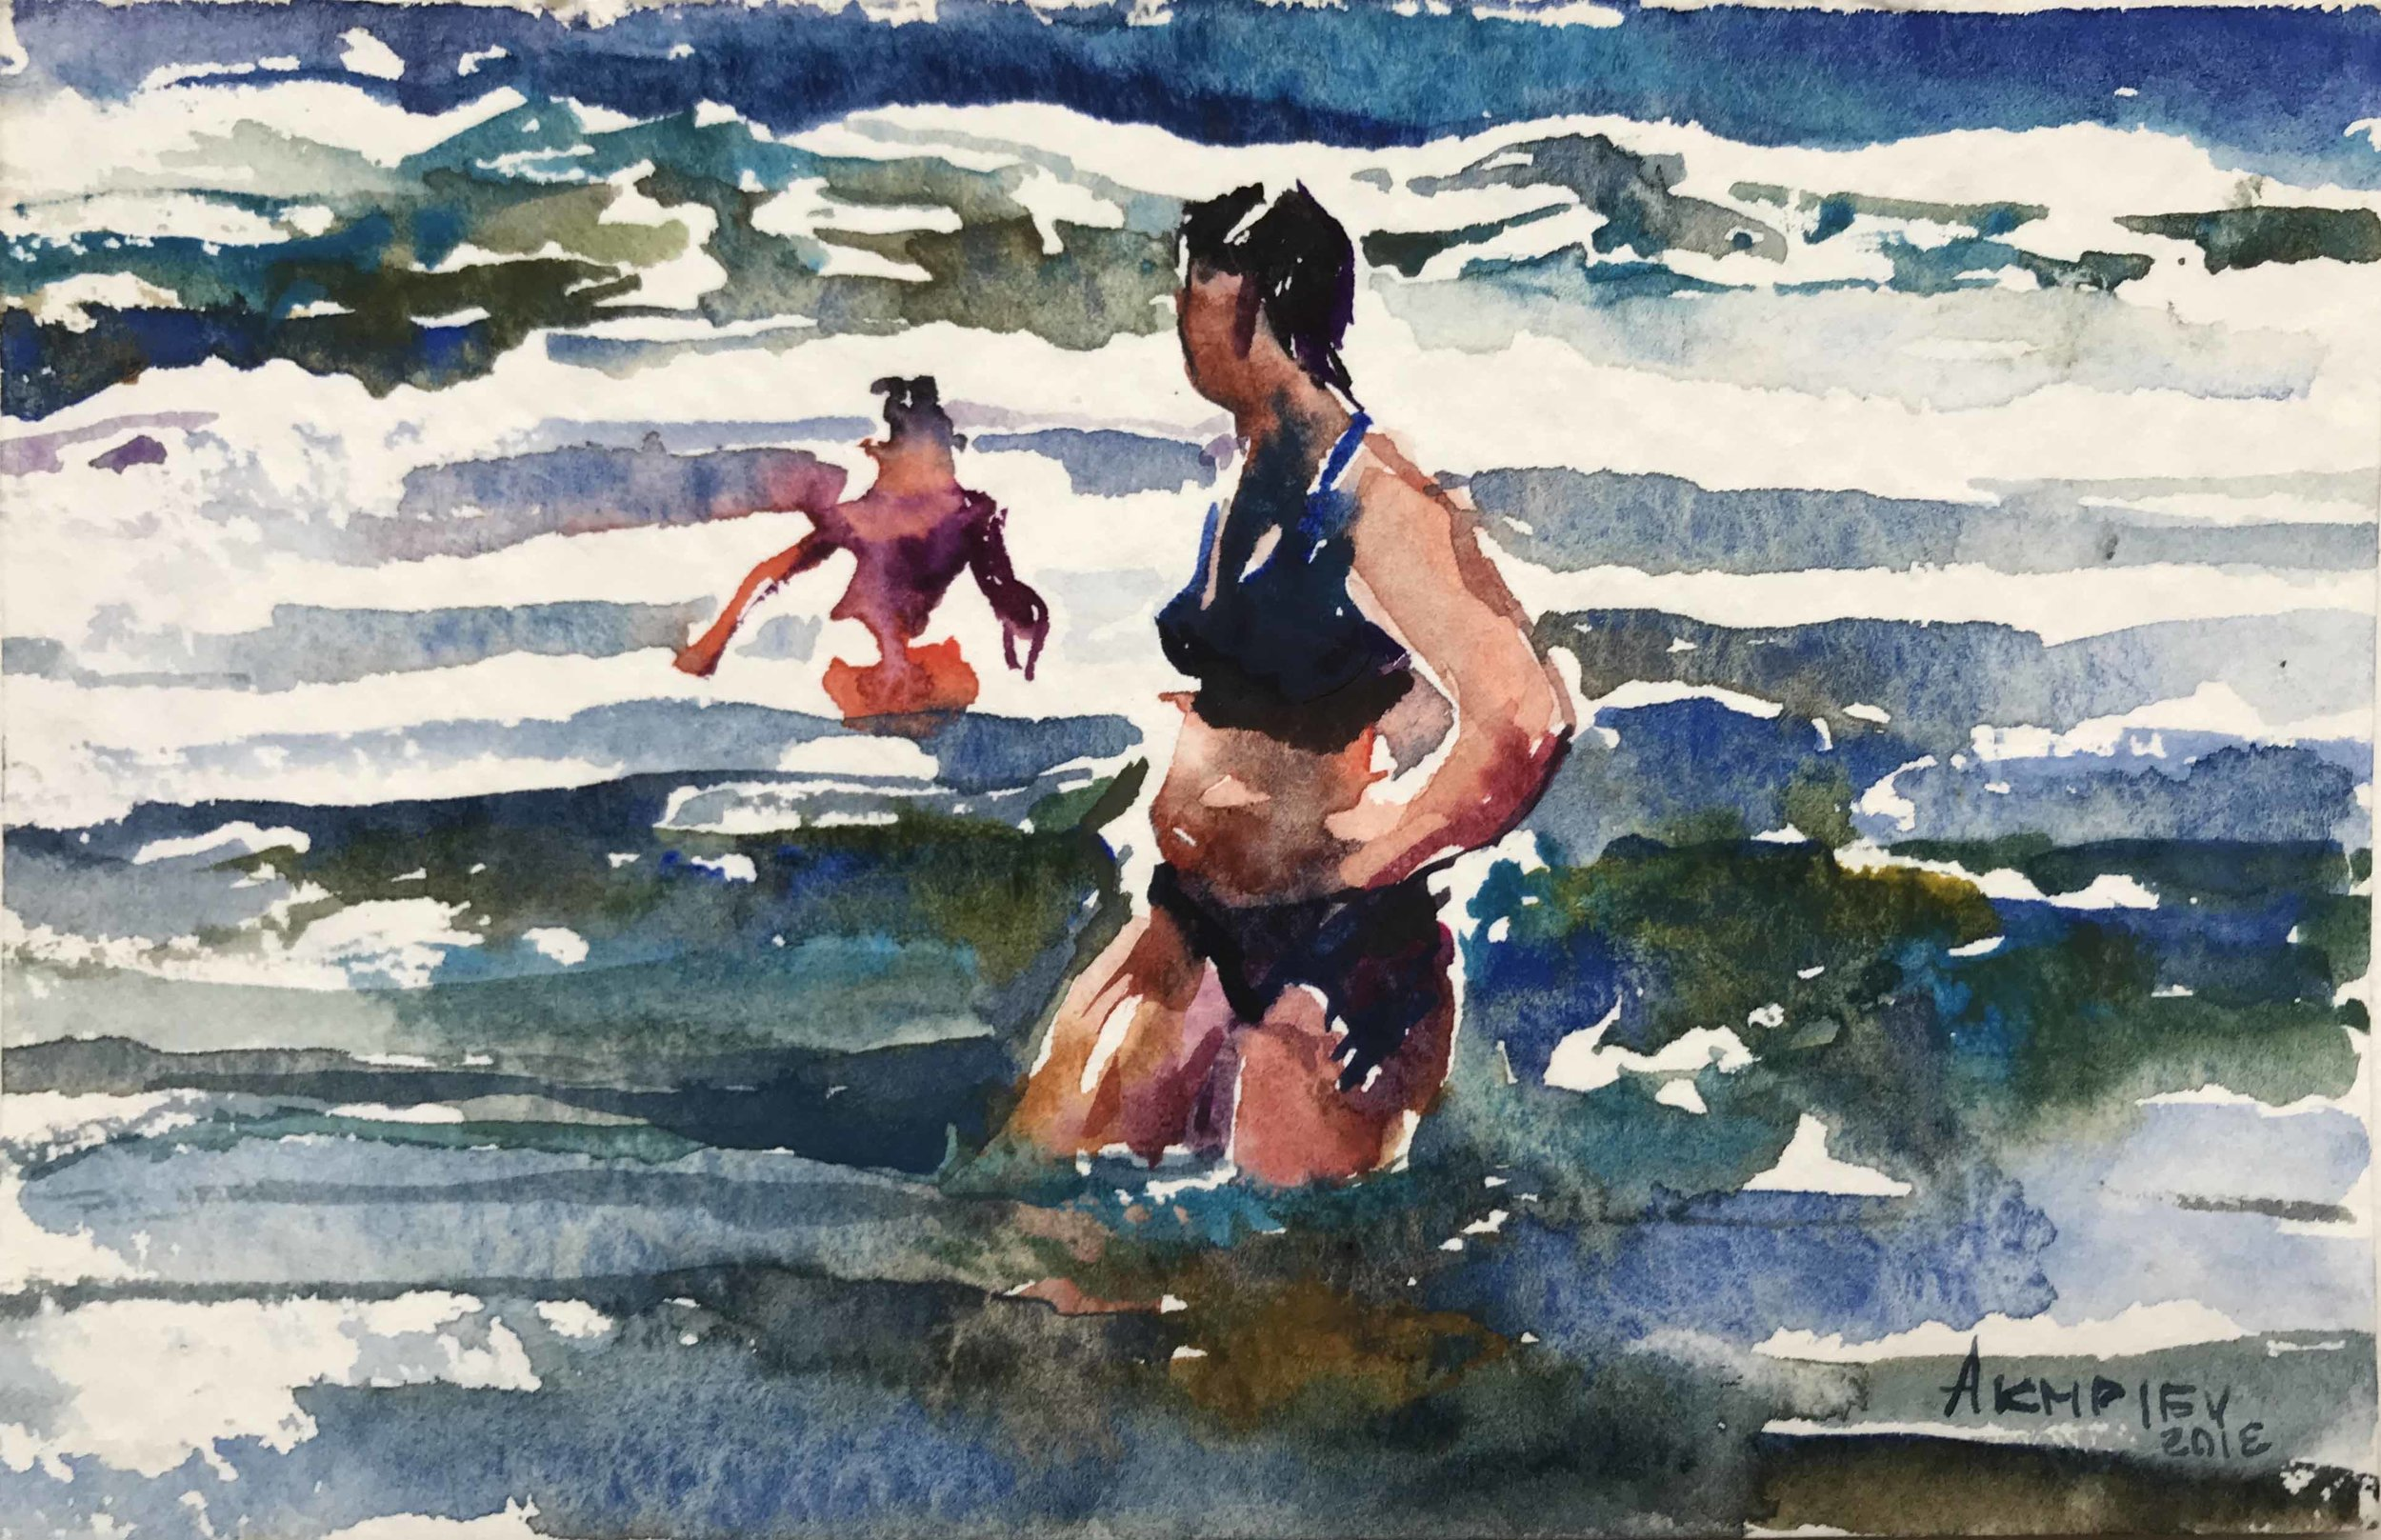 Watercolor on Paper / 4 x 6 inches / Available